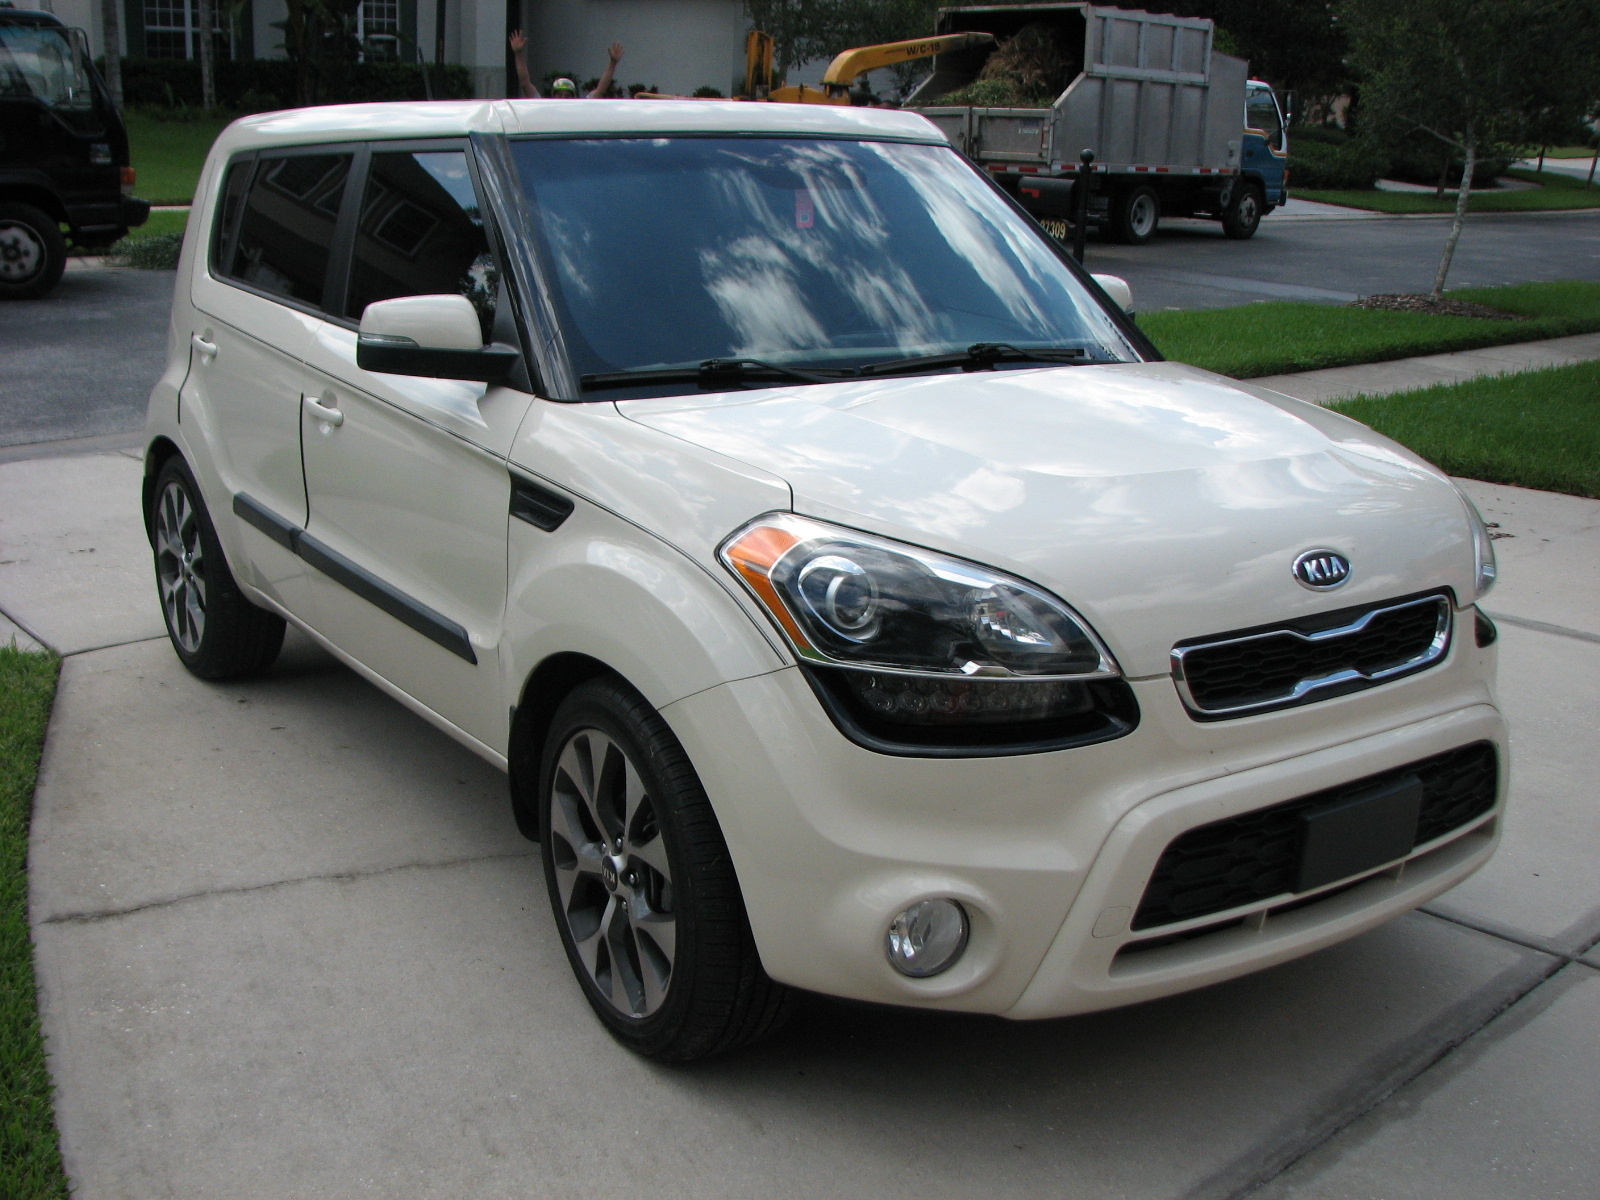 Kia Soul Tire Size >> 2010 Kia soul Tire Size - 2018 - 2019 New Car Reviews by Language Kompis